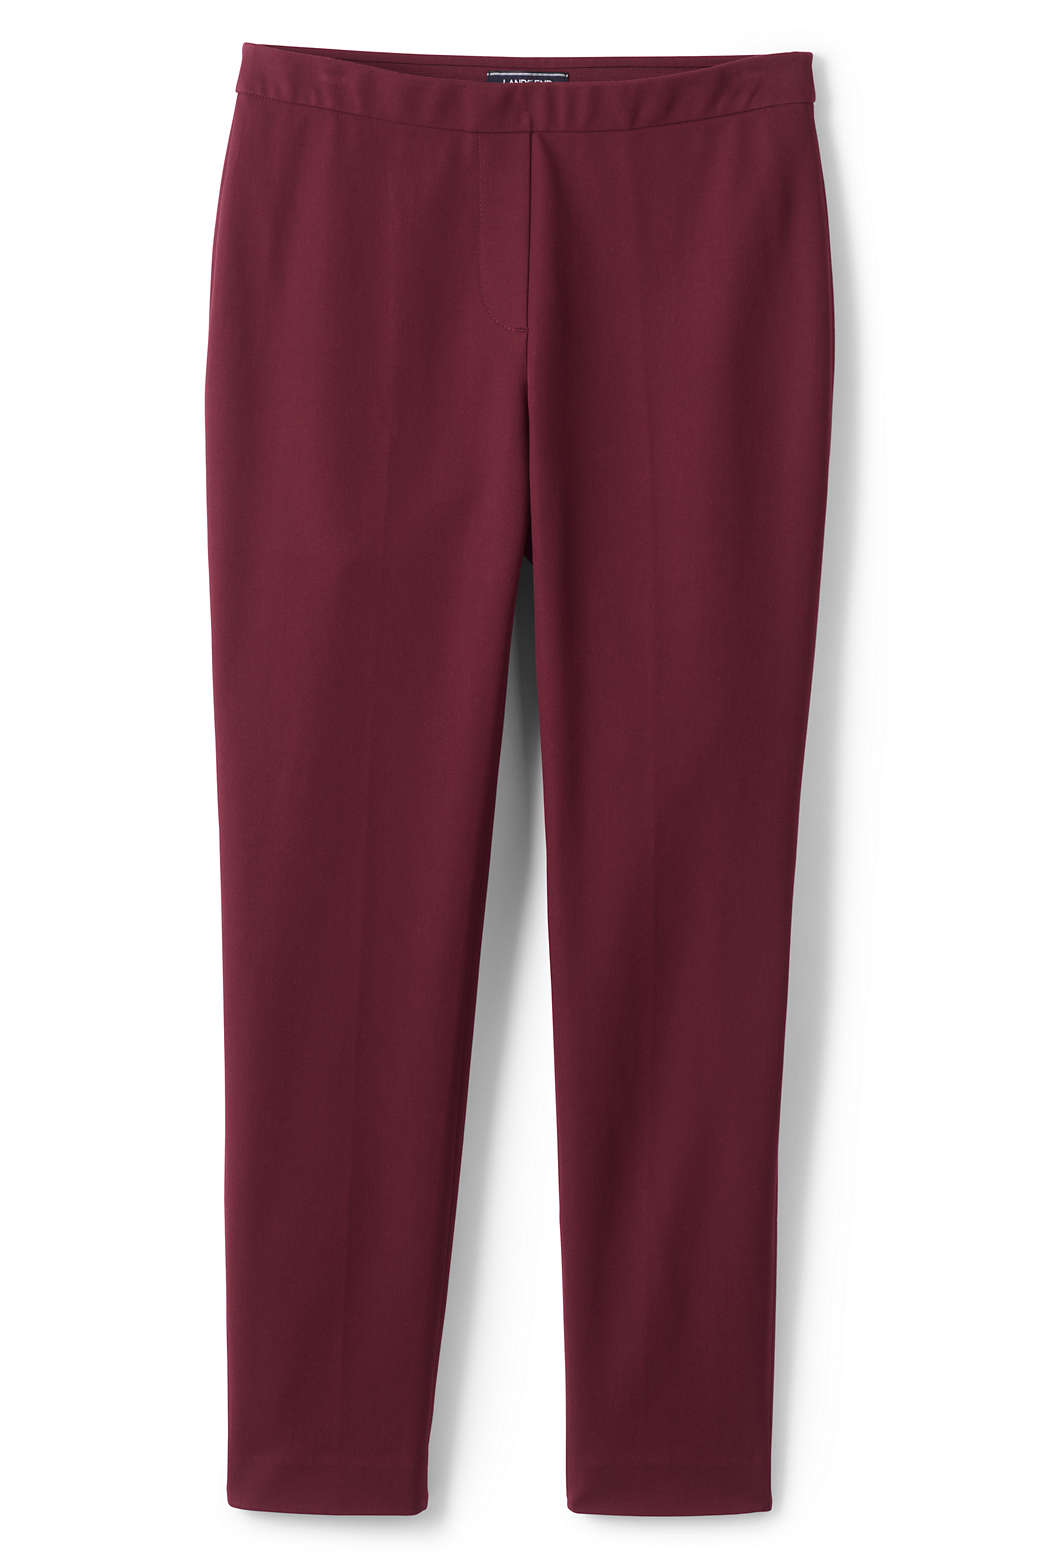 92642048874 Women s Plus Size Mid Rise Bi-Stretch Pull-on Ankle Pants from Lands  End